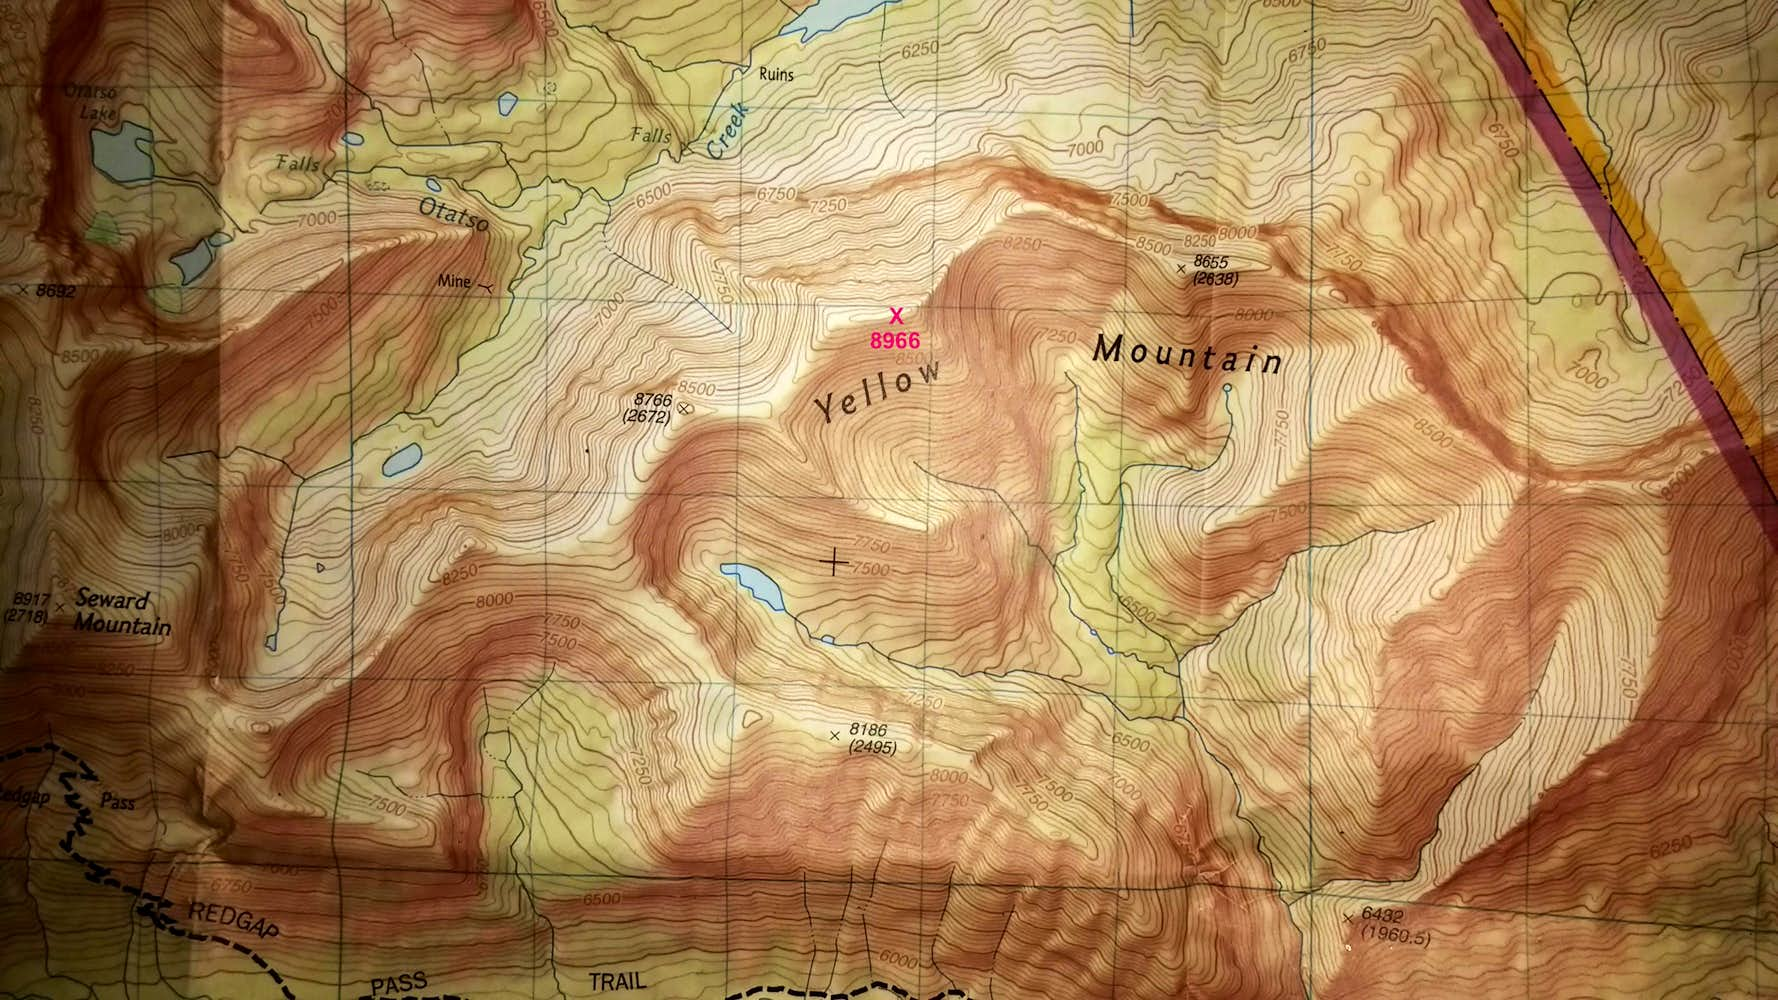 true summit of Yellow Mountain - Trails Illustrated topo map